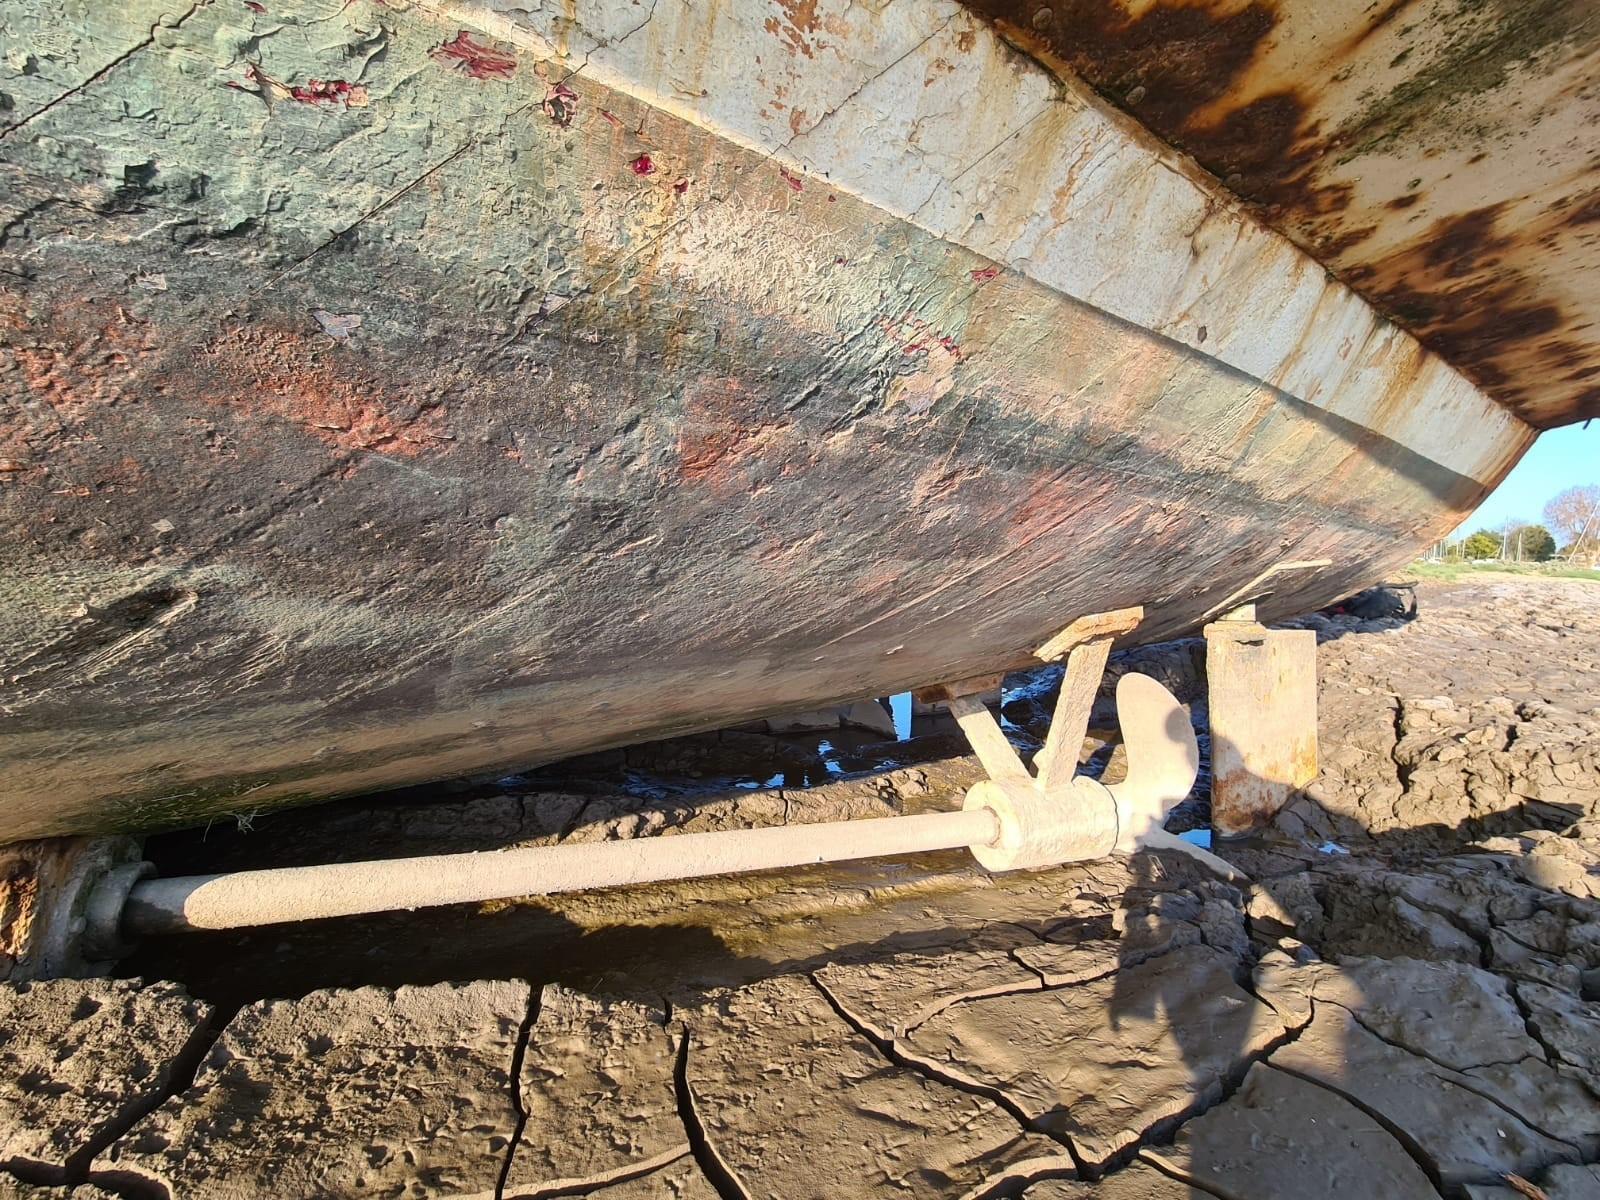 Latest photos from the Robins family who are restoring a WW2 warship